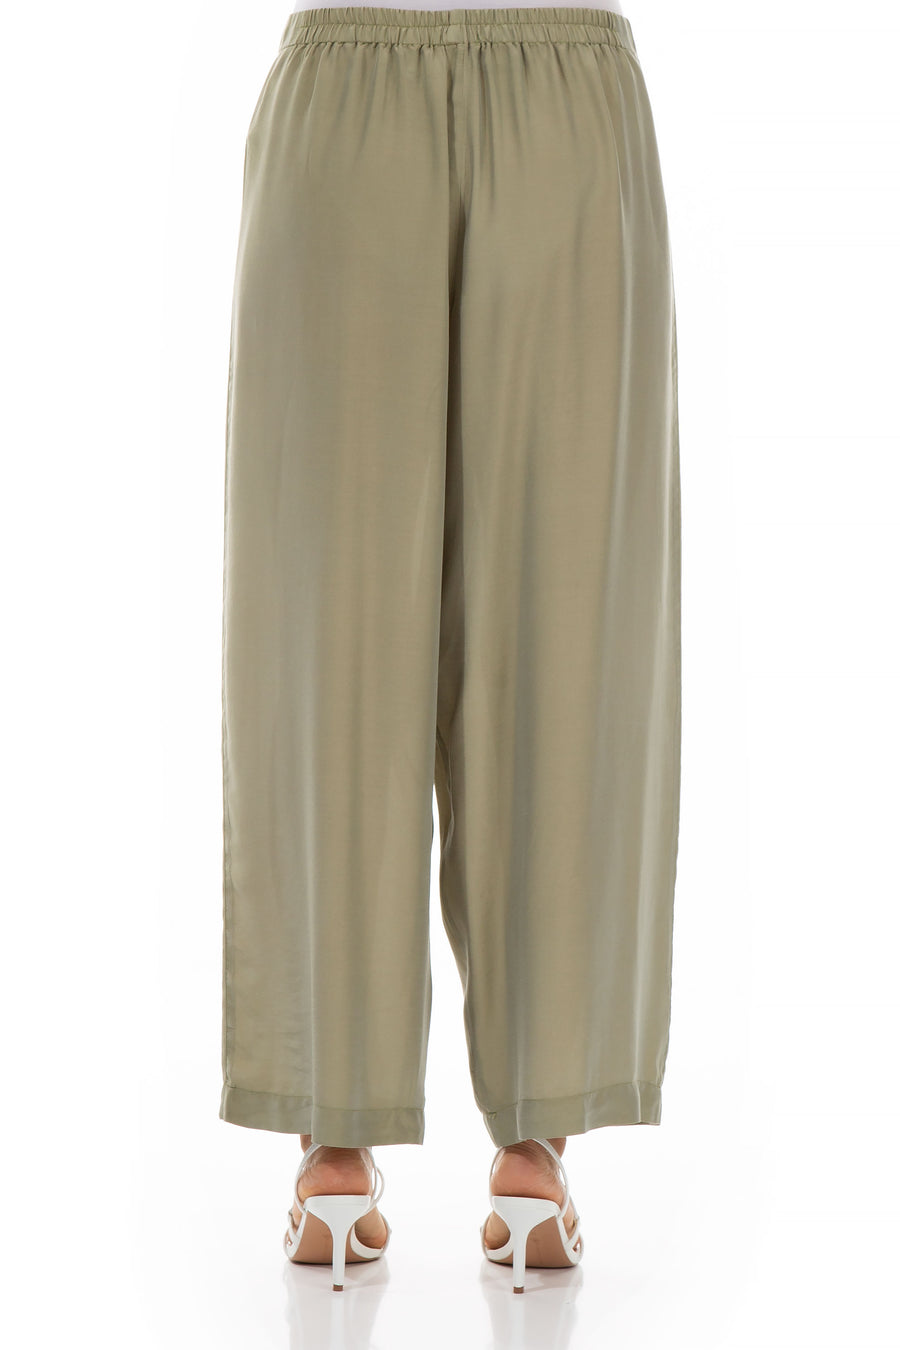 Straight Light Khaki Silk Bamboo Trousers